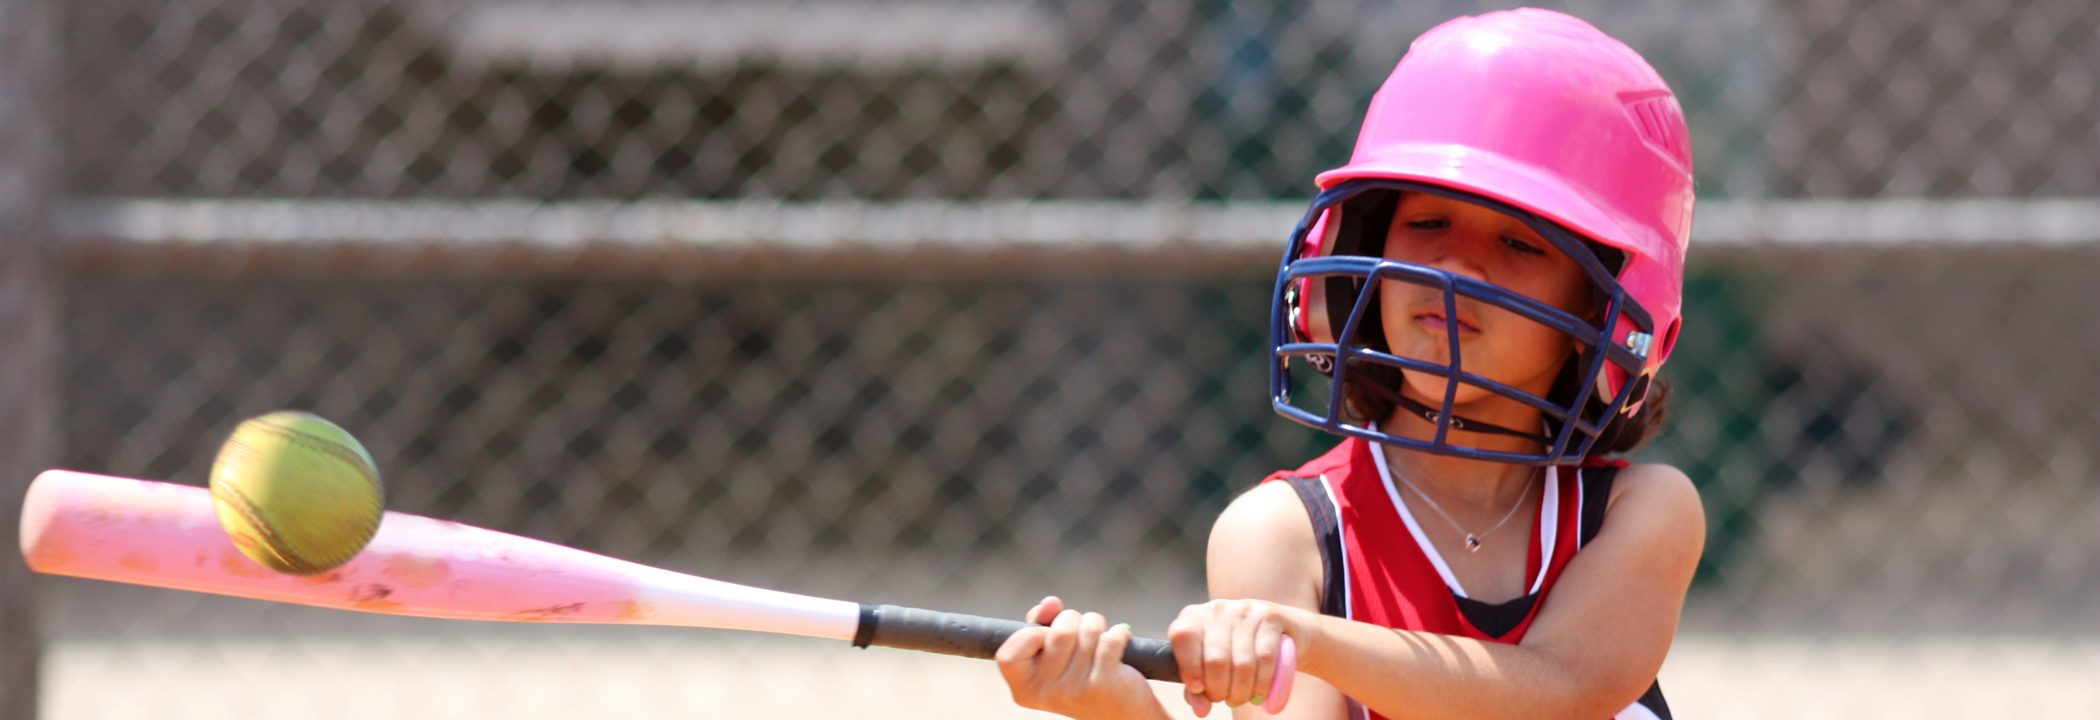 https://www.optometrists.org/findeyedoctordirectory/templateresources/carousel/sports-vision-training-child-baseball-CROP-DR9261166.jpg